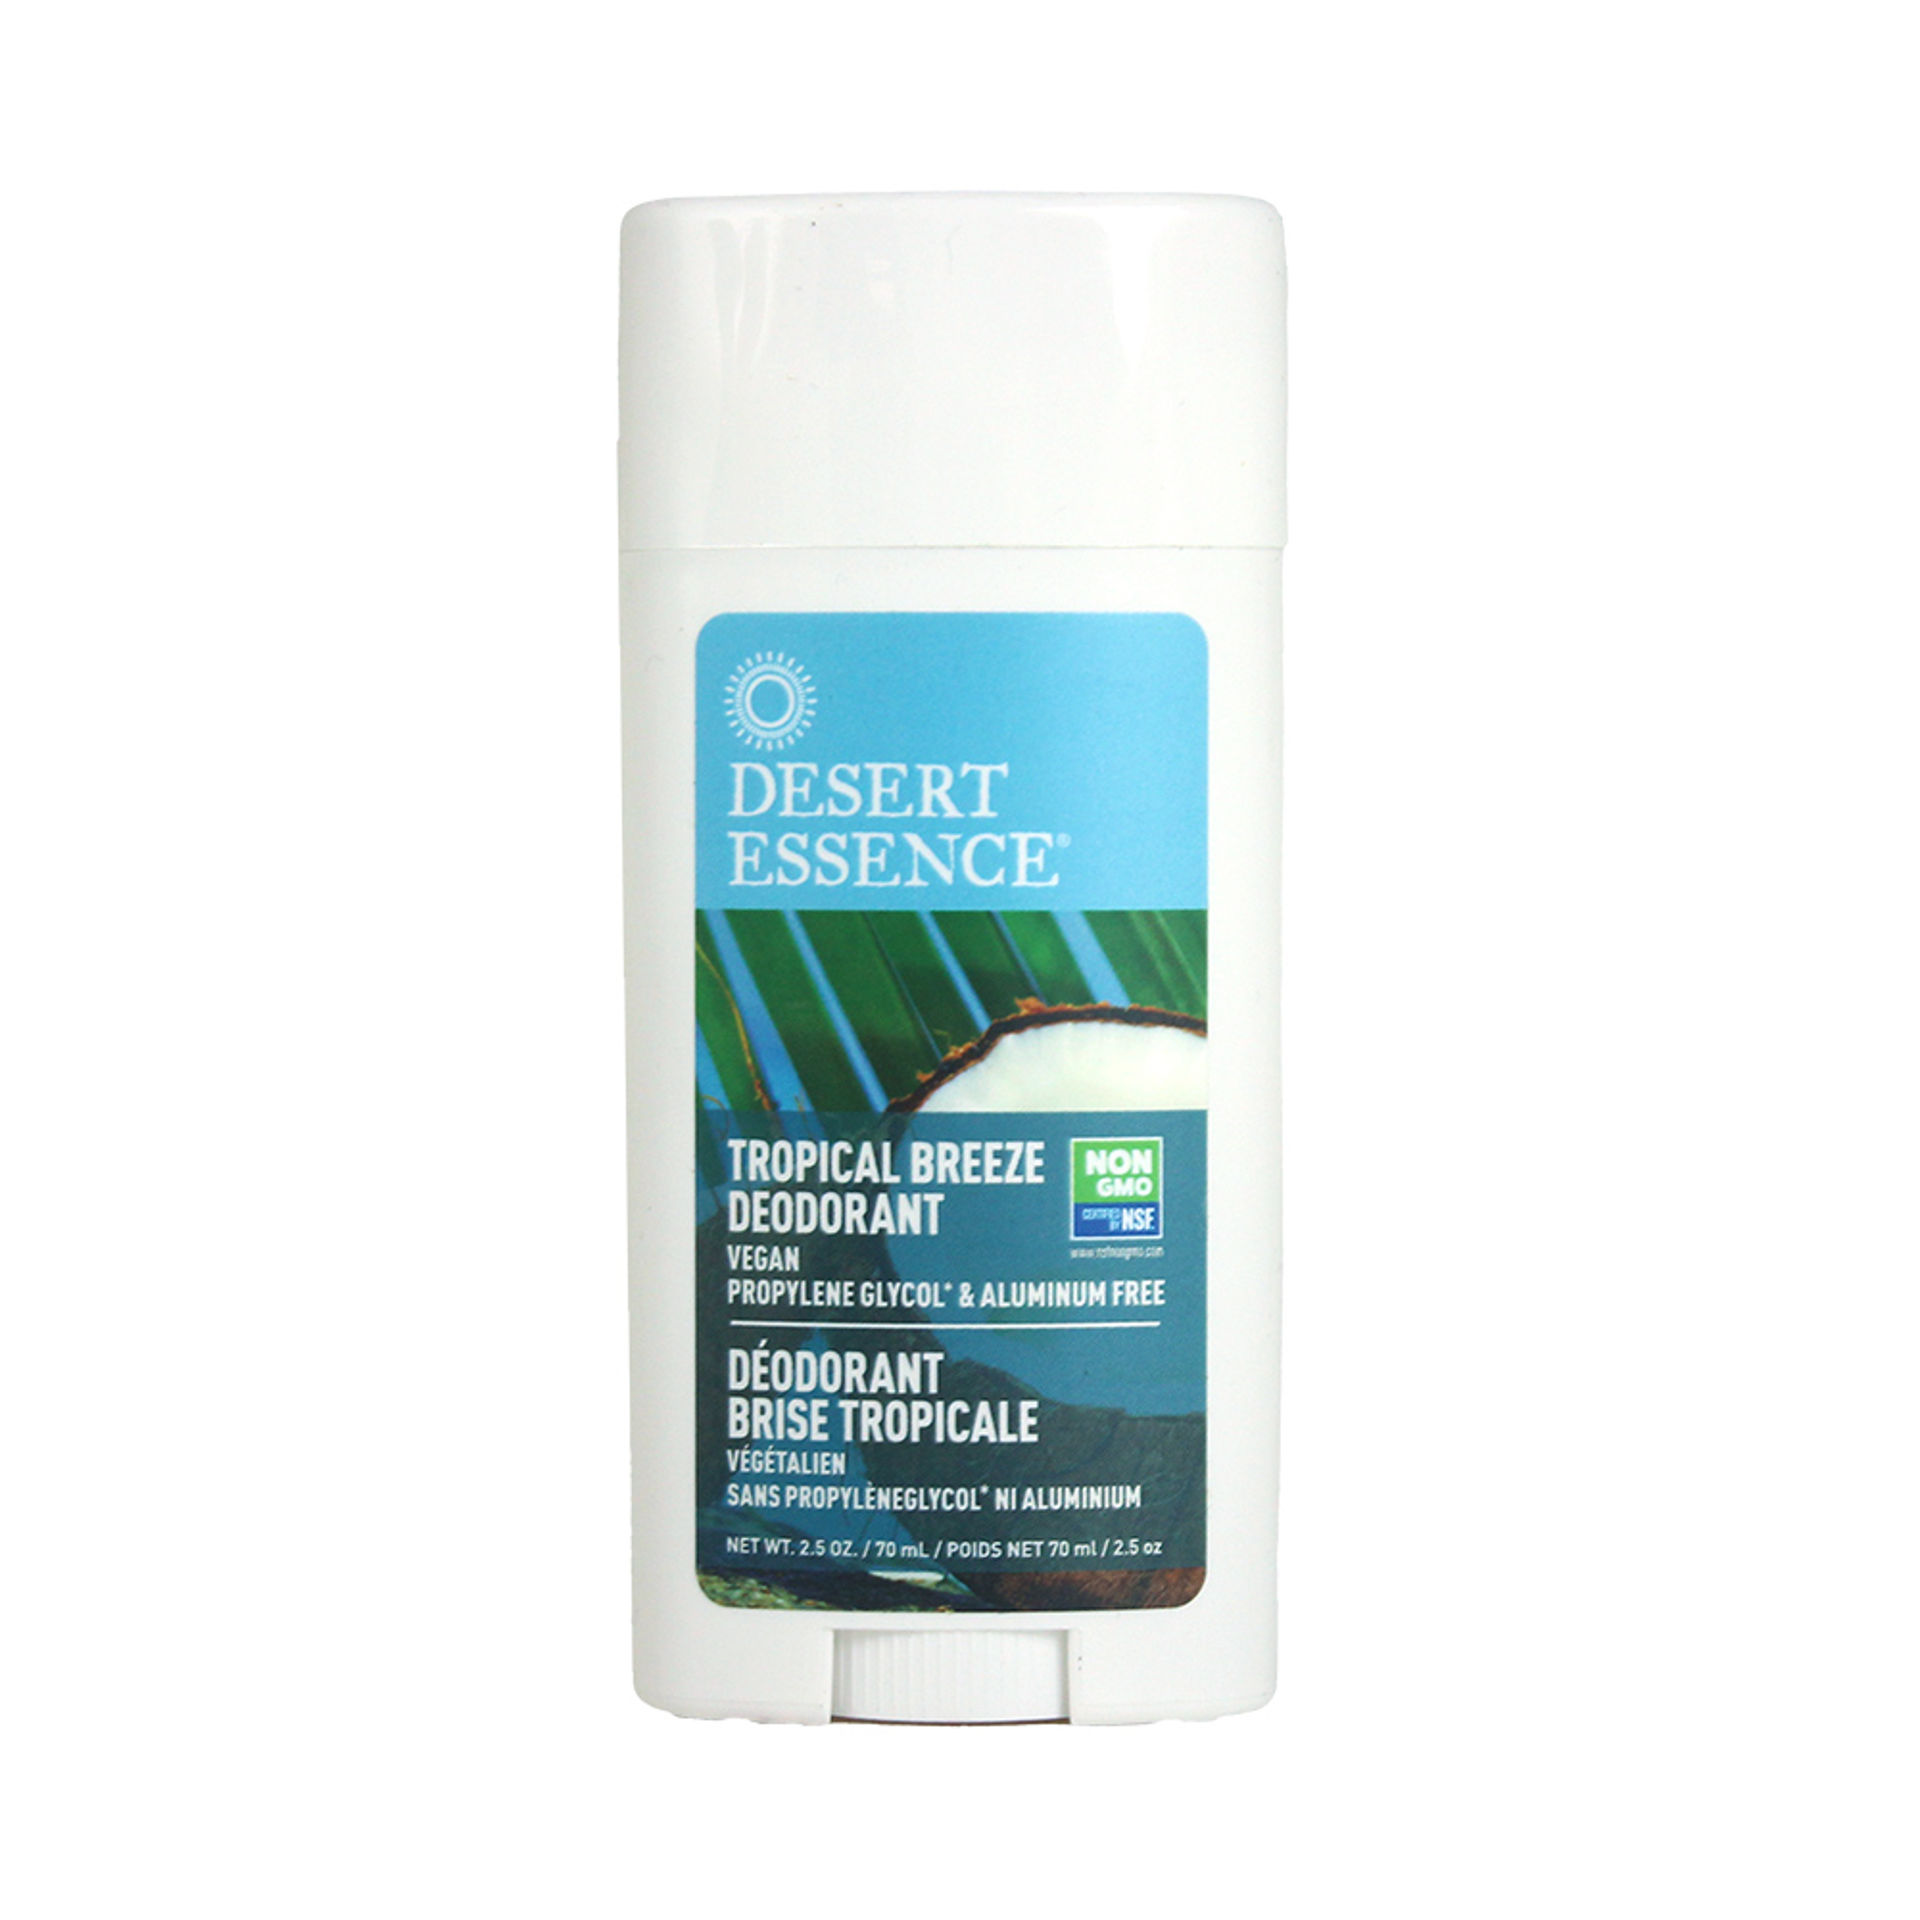 Picture of Desert Essence Deodorant Tropical Breeze